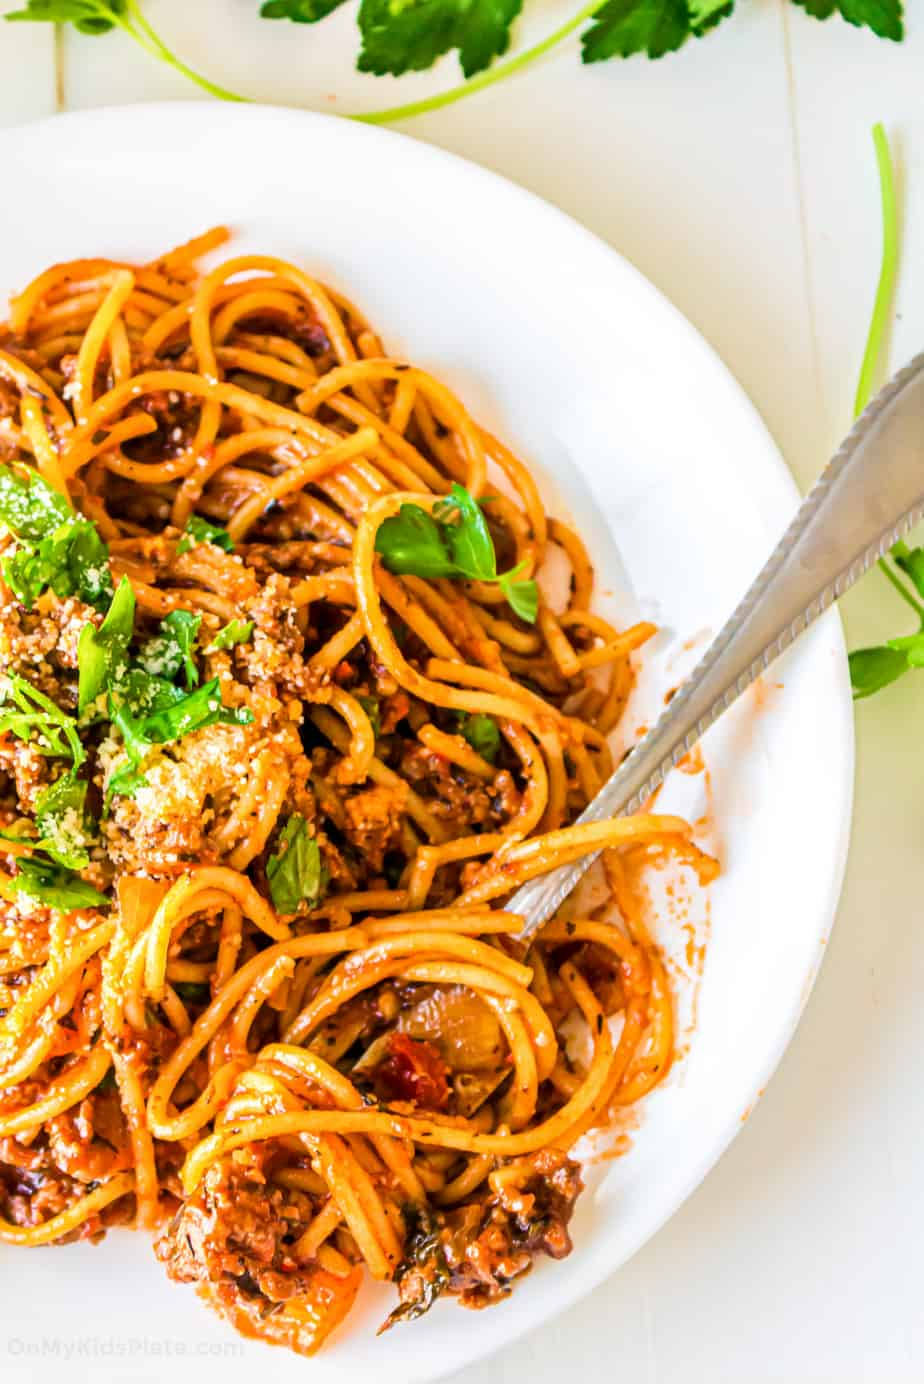 Close up of a plate of spaghetti in red sauce with ground turkey.